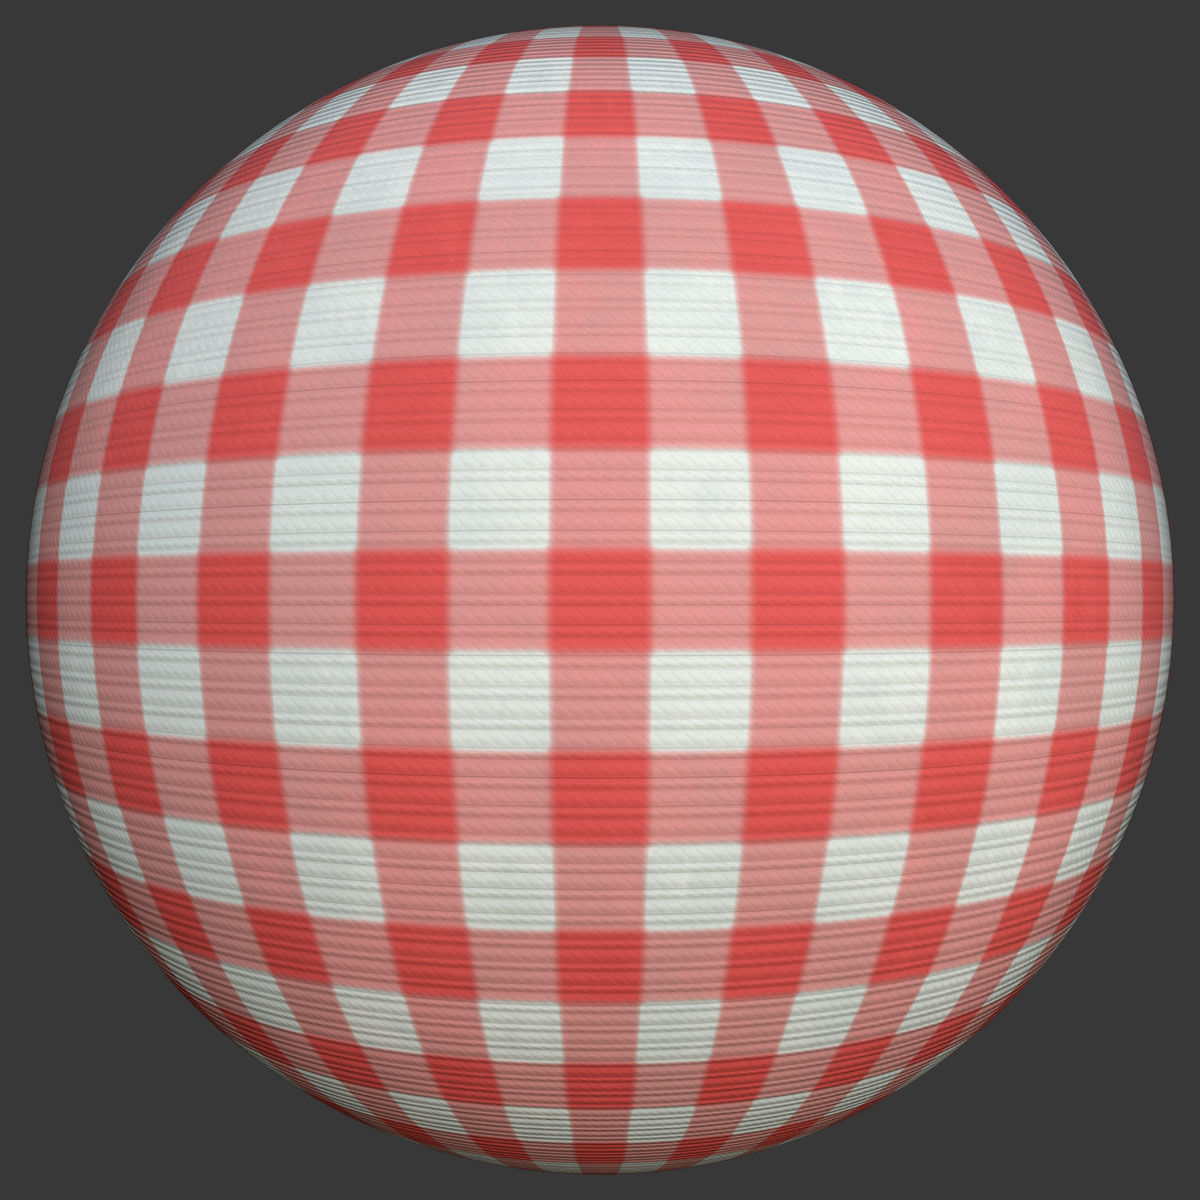 Red and White Checker Cloth Texture | TextureCan